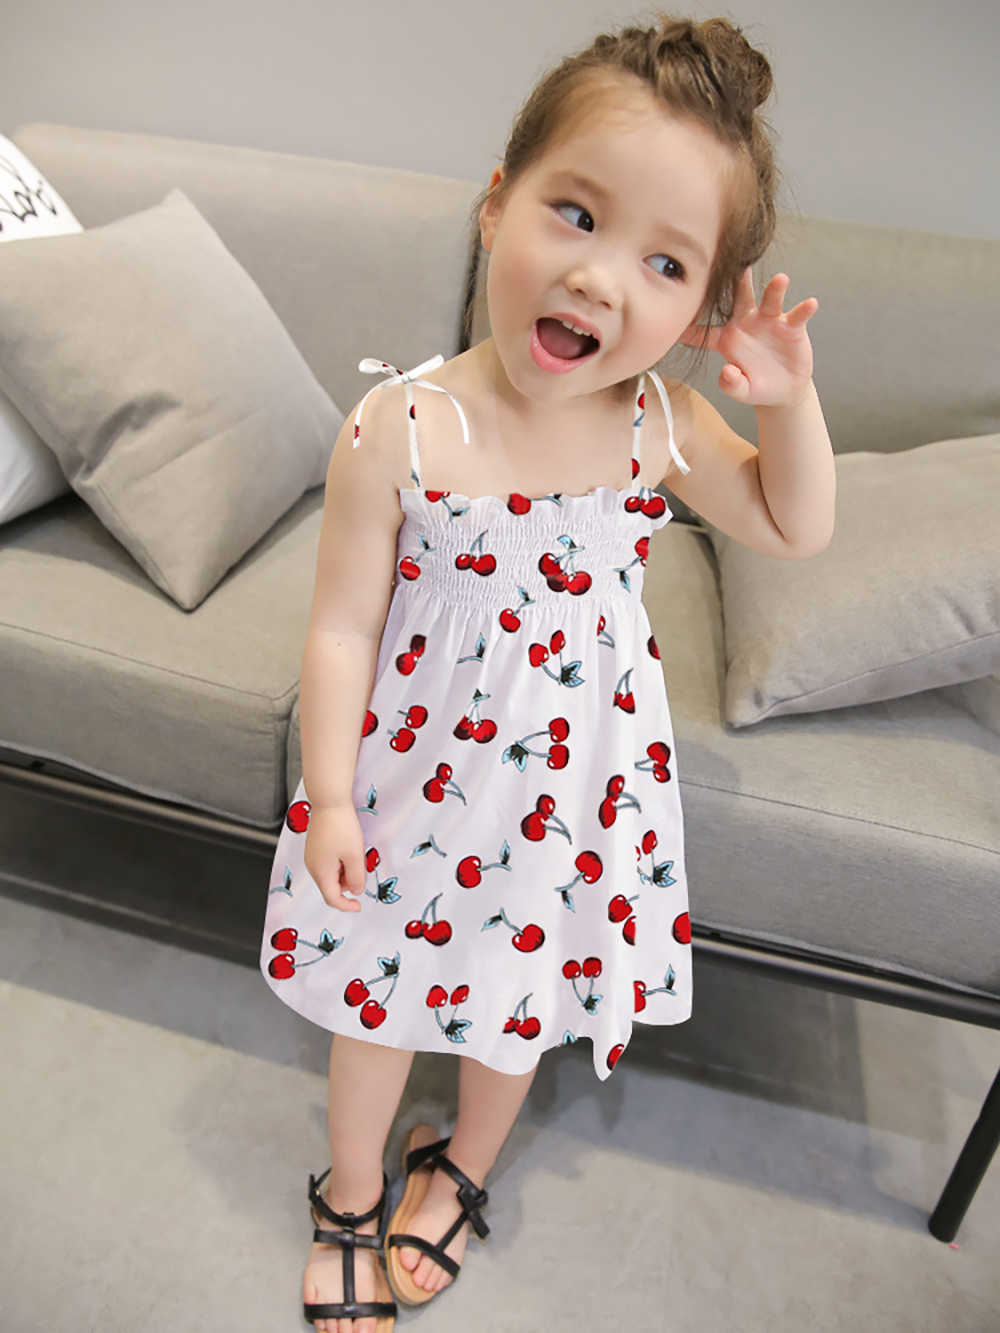 Kids Girl Sling Dress Summer Chidlren Clothes Toddler Girls Dresses Baby Cotton Sleeveless Print Flower Princess Clothing